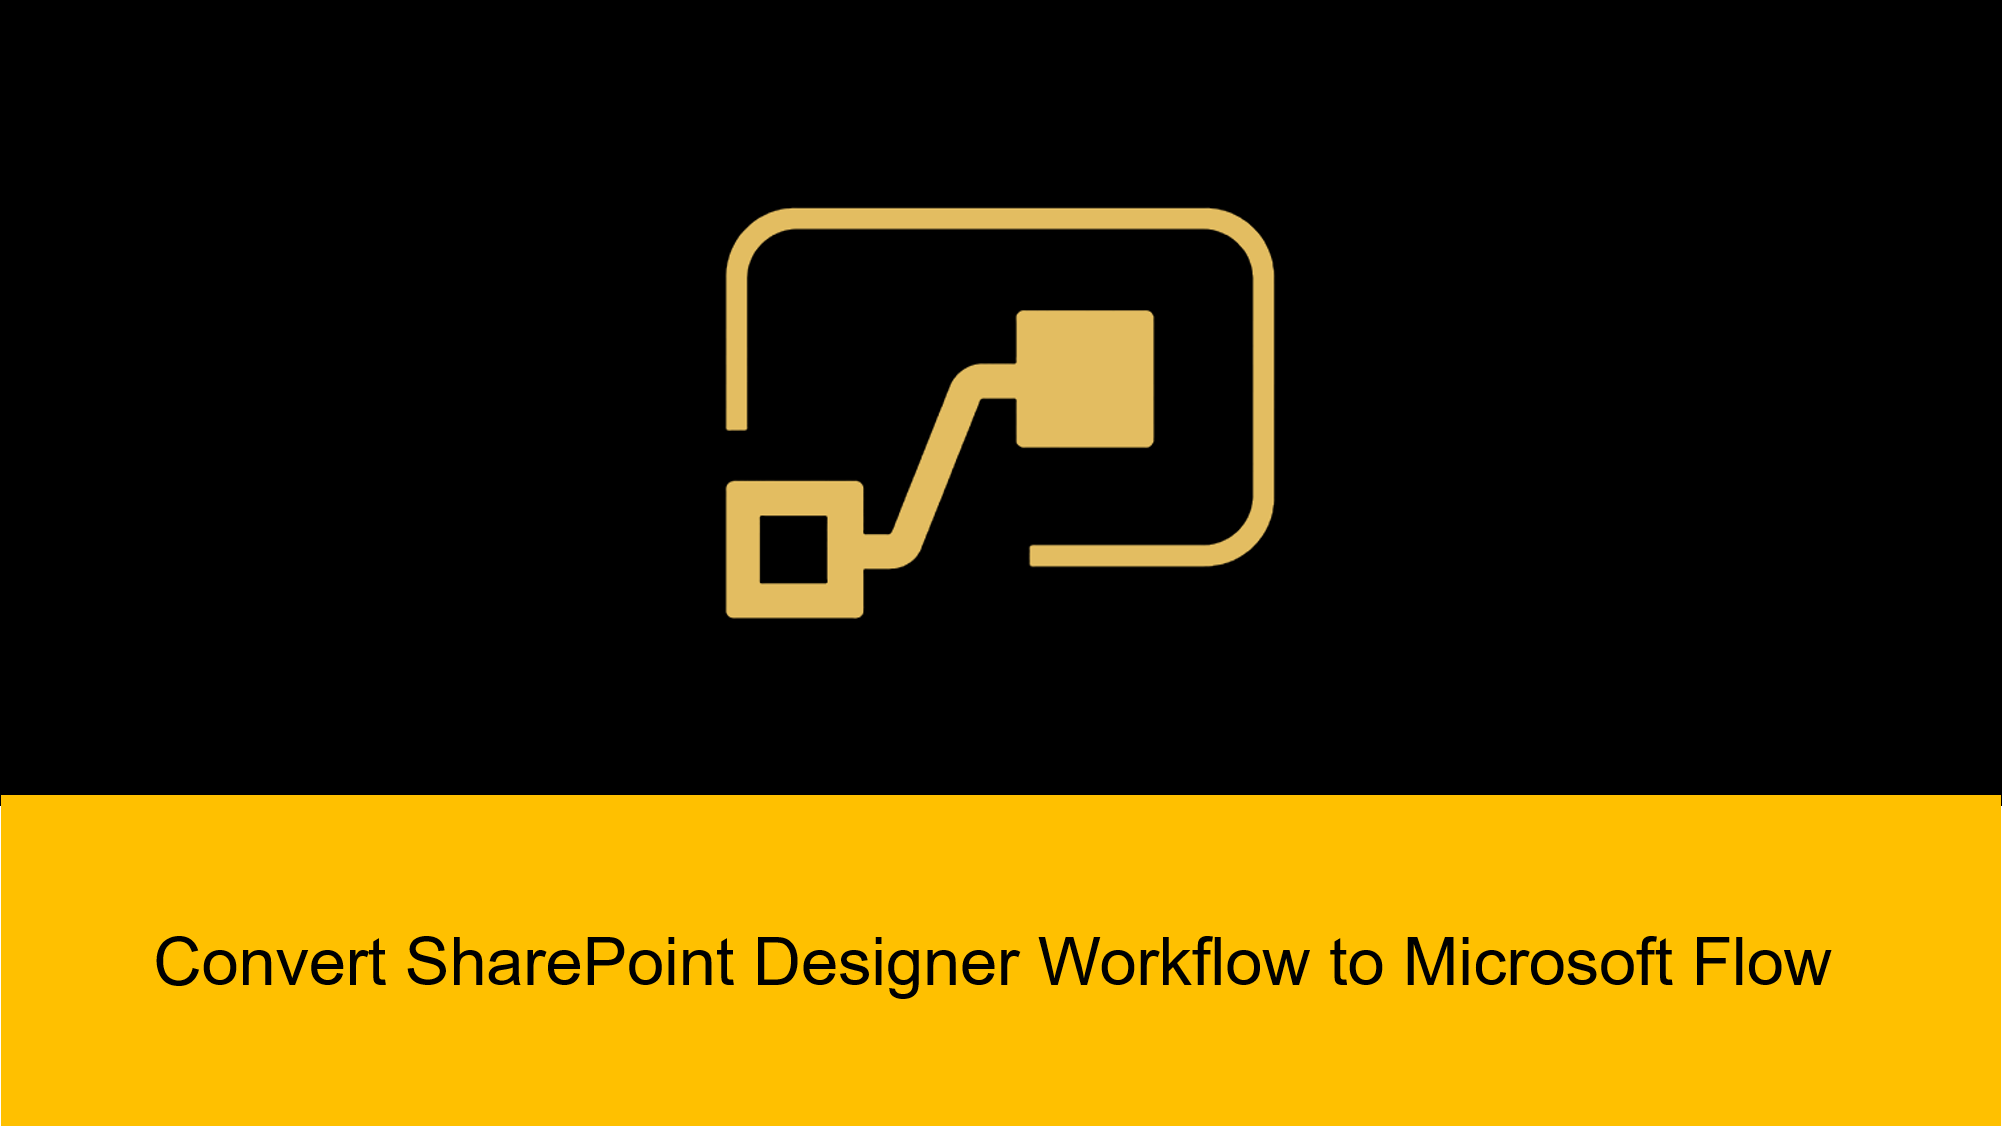 I will convert a SharePoint Designer Workflow to Microsoft Flow